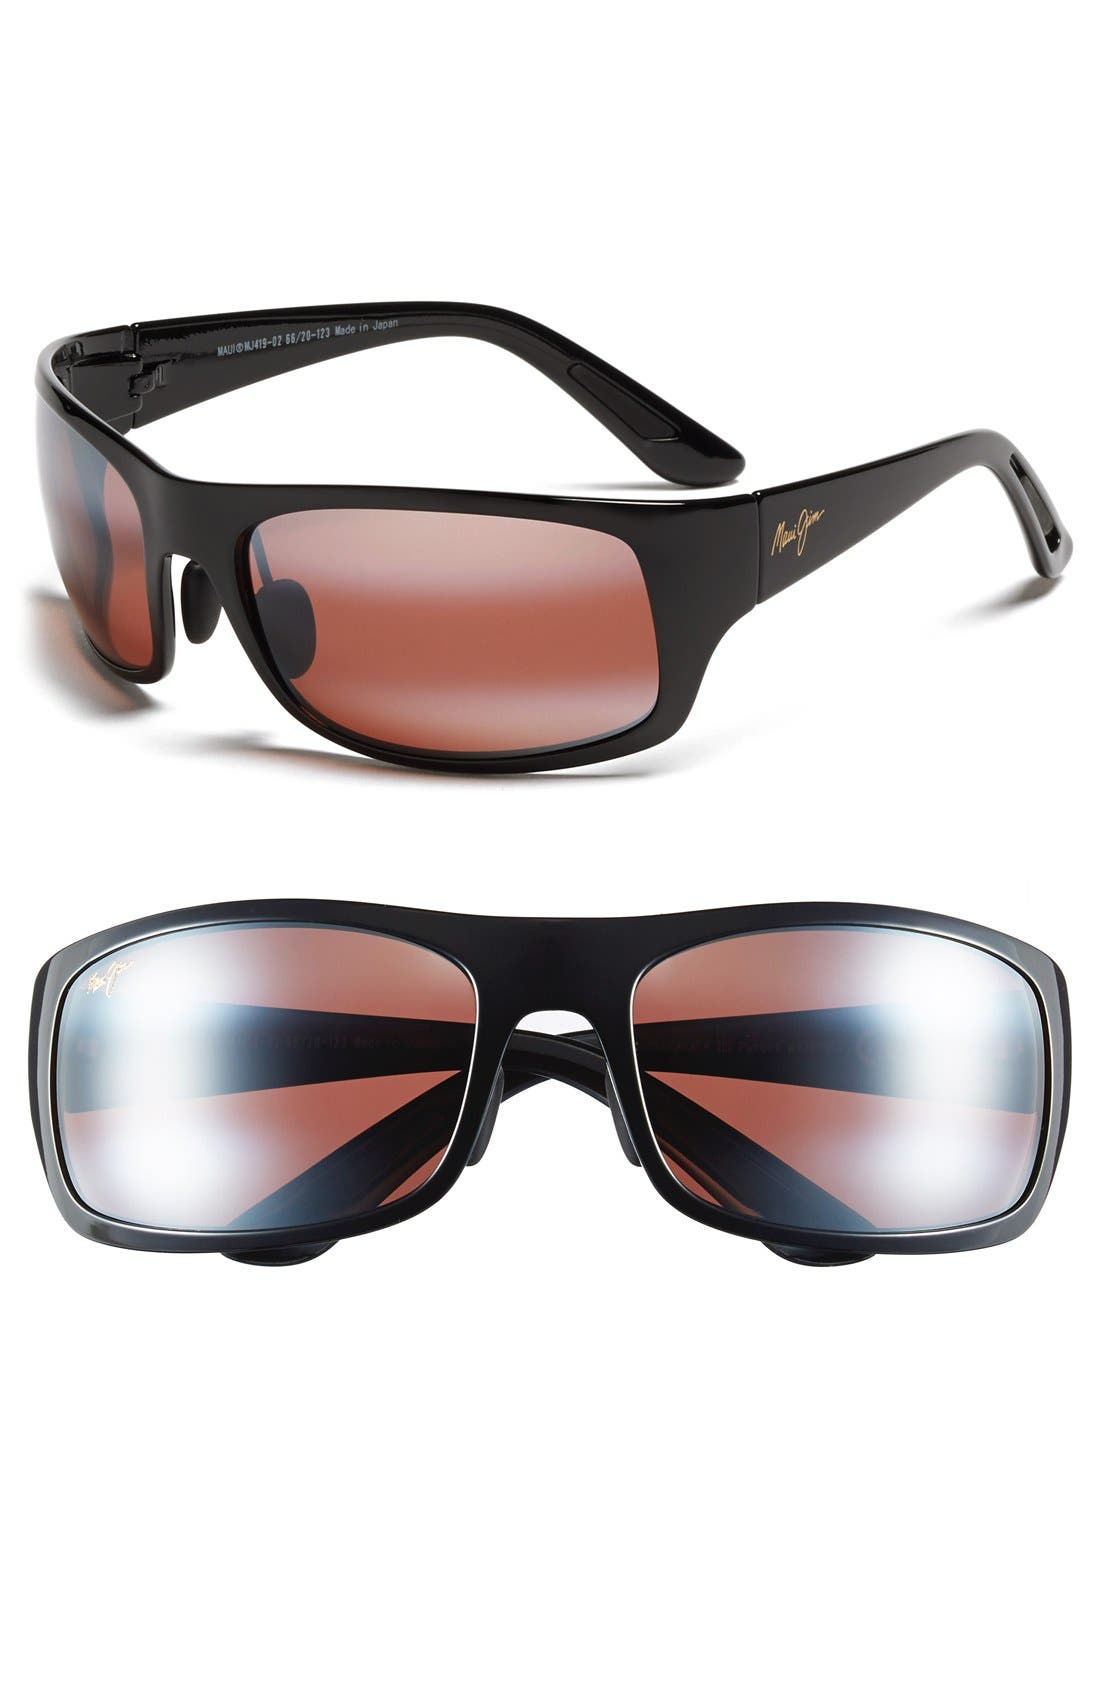 MAUI JIM 'Haleakala - PolarizedPlus®2' Polarized Wrap Sunglasses